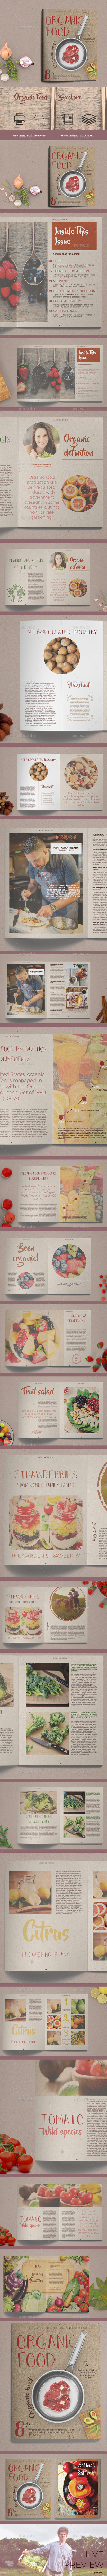 Organic Food Brochure - Informational Brochures